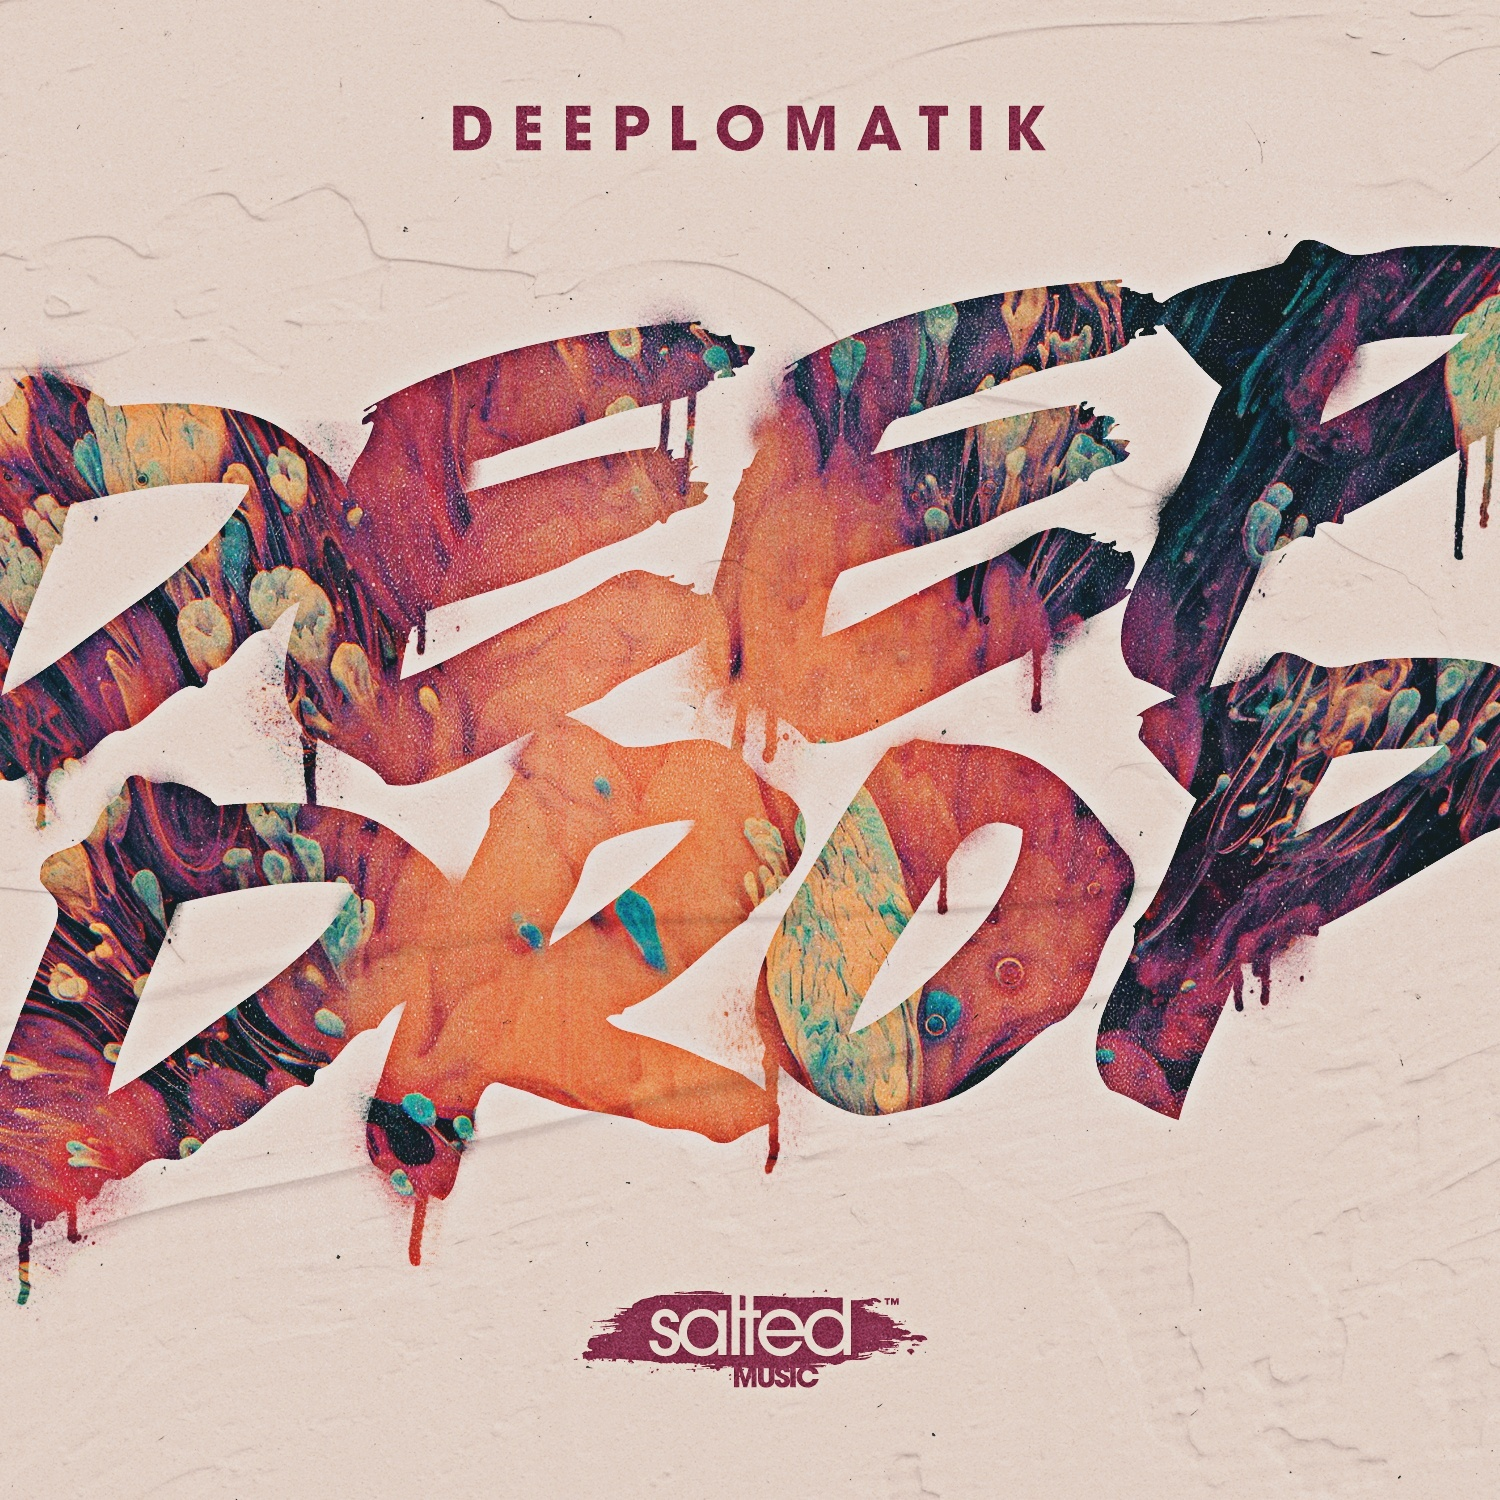 SLT181: Deep Drop - Deeplomatik (Salted Music)